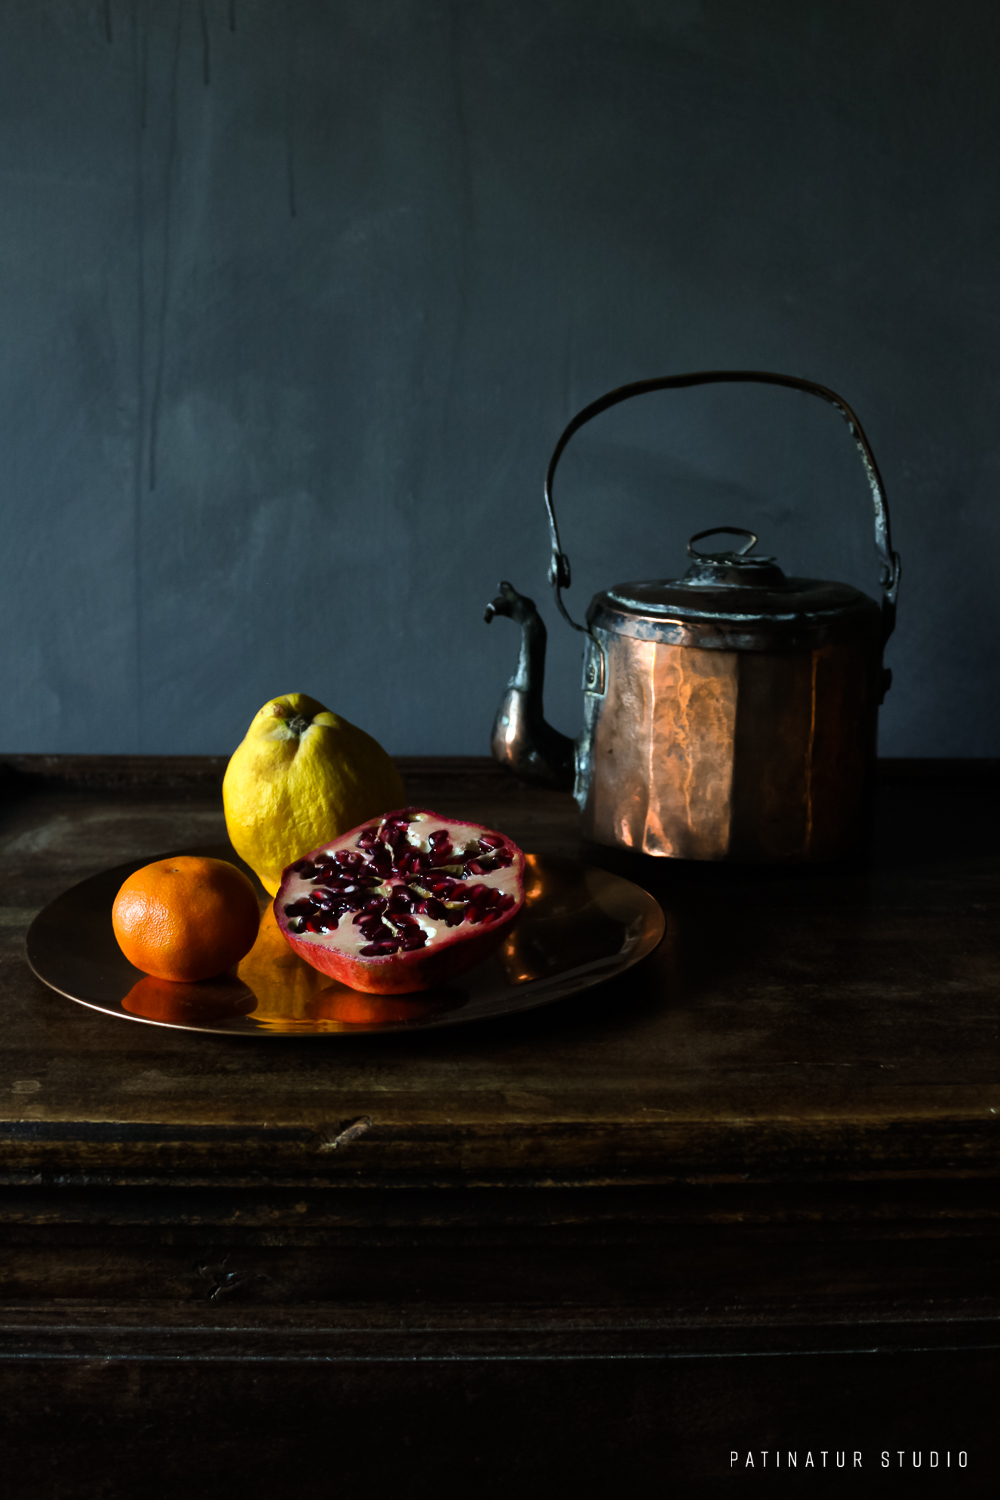 Photo Art | Dark and moody still life with fruit plate and copper kettle